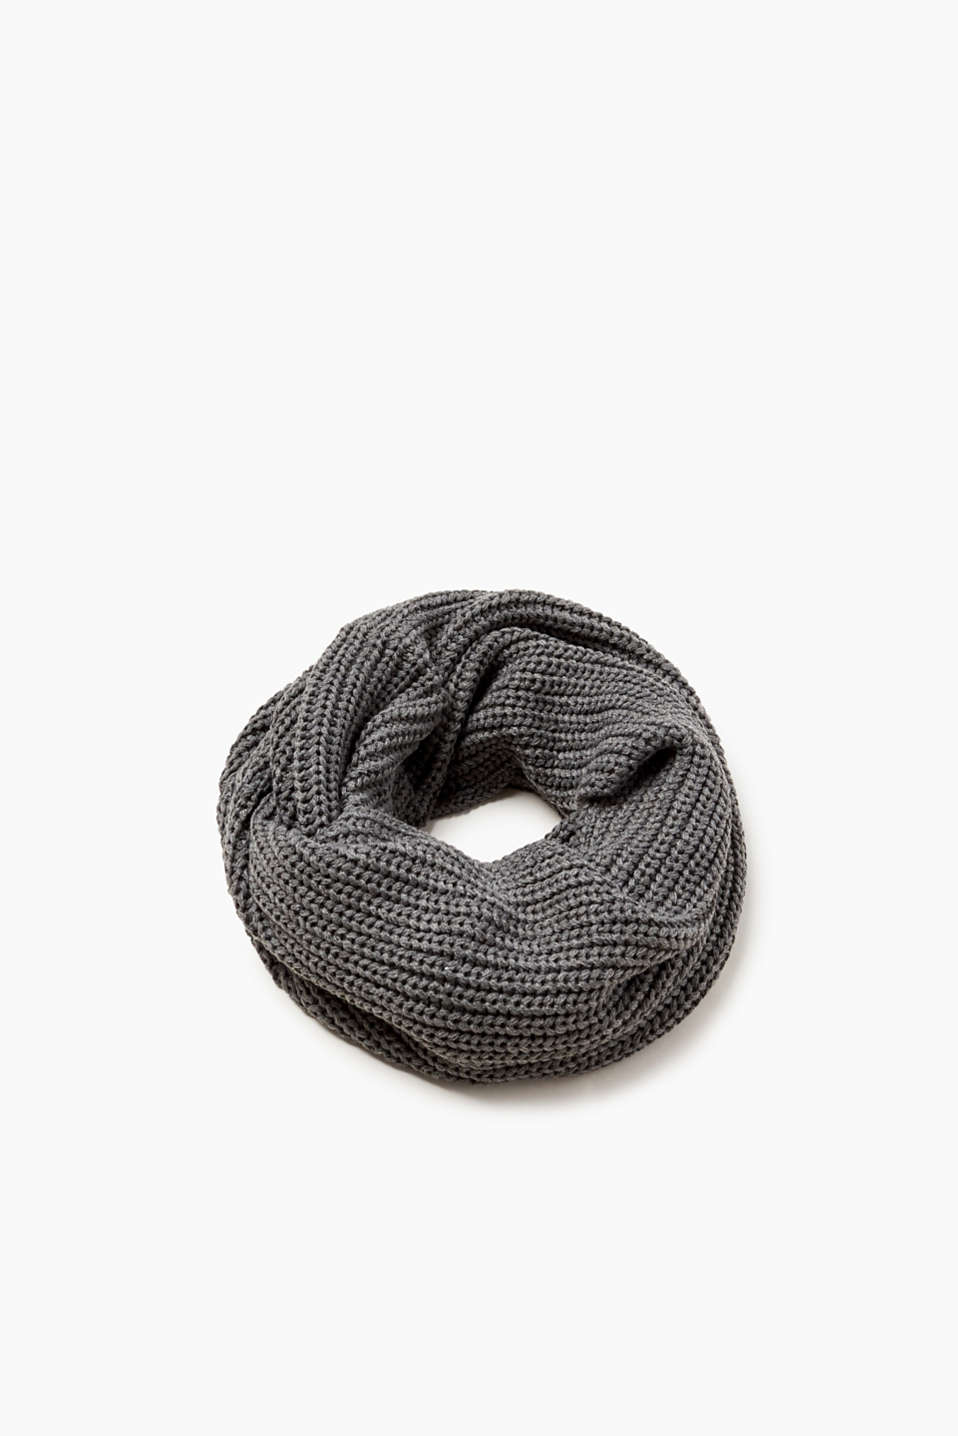 Esprit - Textured knit snood